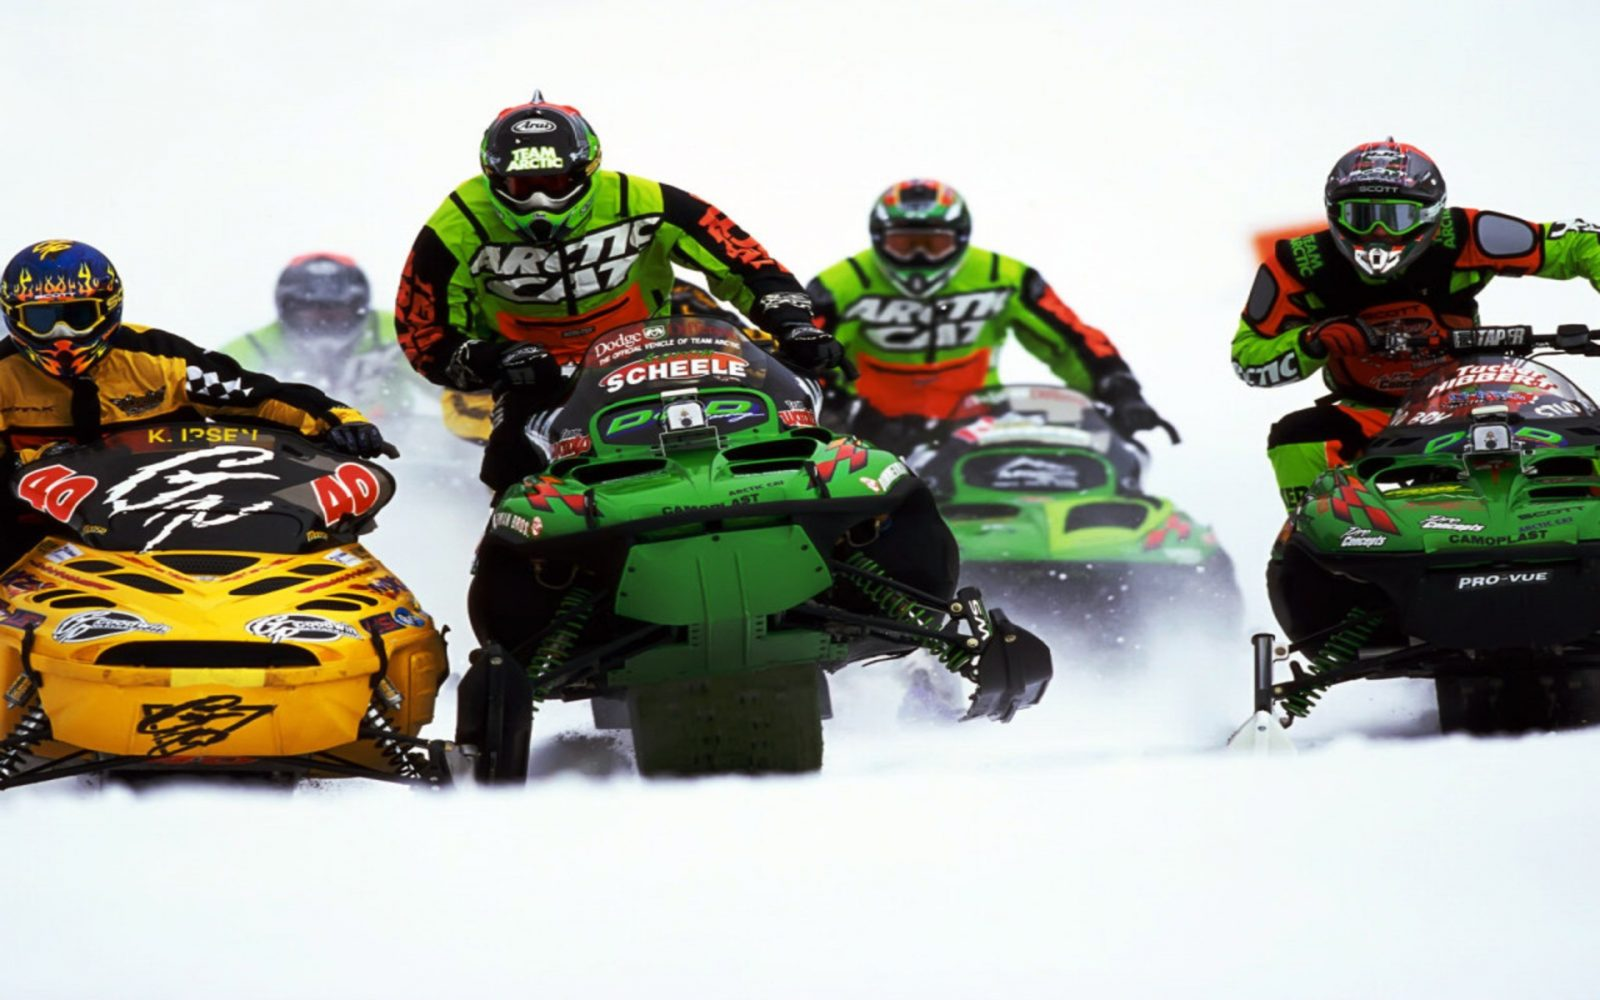 Cornwall Speedway to hold thrilling snowmobile Circuit Pro Tour